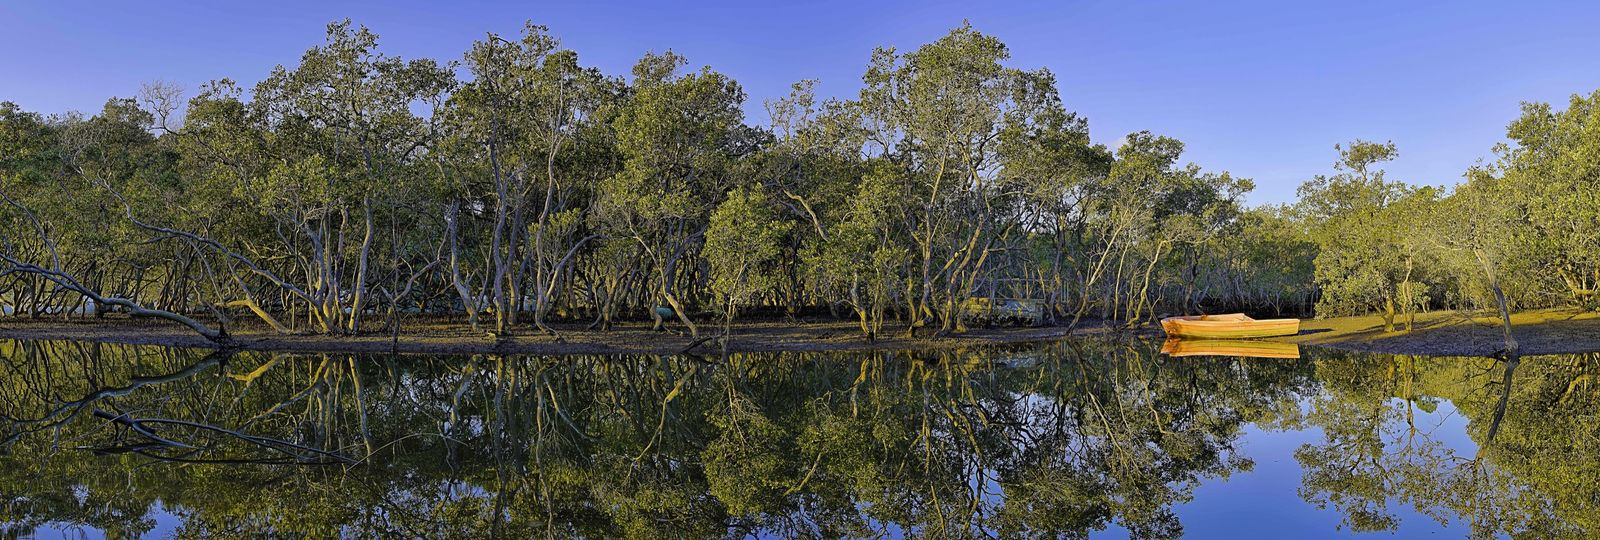 Panorama Hawkesbury River Golden Hour Light And Shadow Boat Mangroves Landscape Landscape_Collection EyeEm Best Shots - Landscape Water Reflections Full Resolution version https://m.flickr.com/photos/131222116@N06/17858948980/